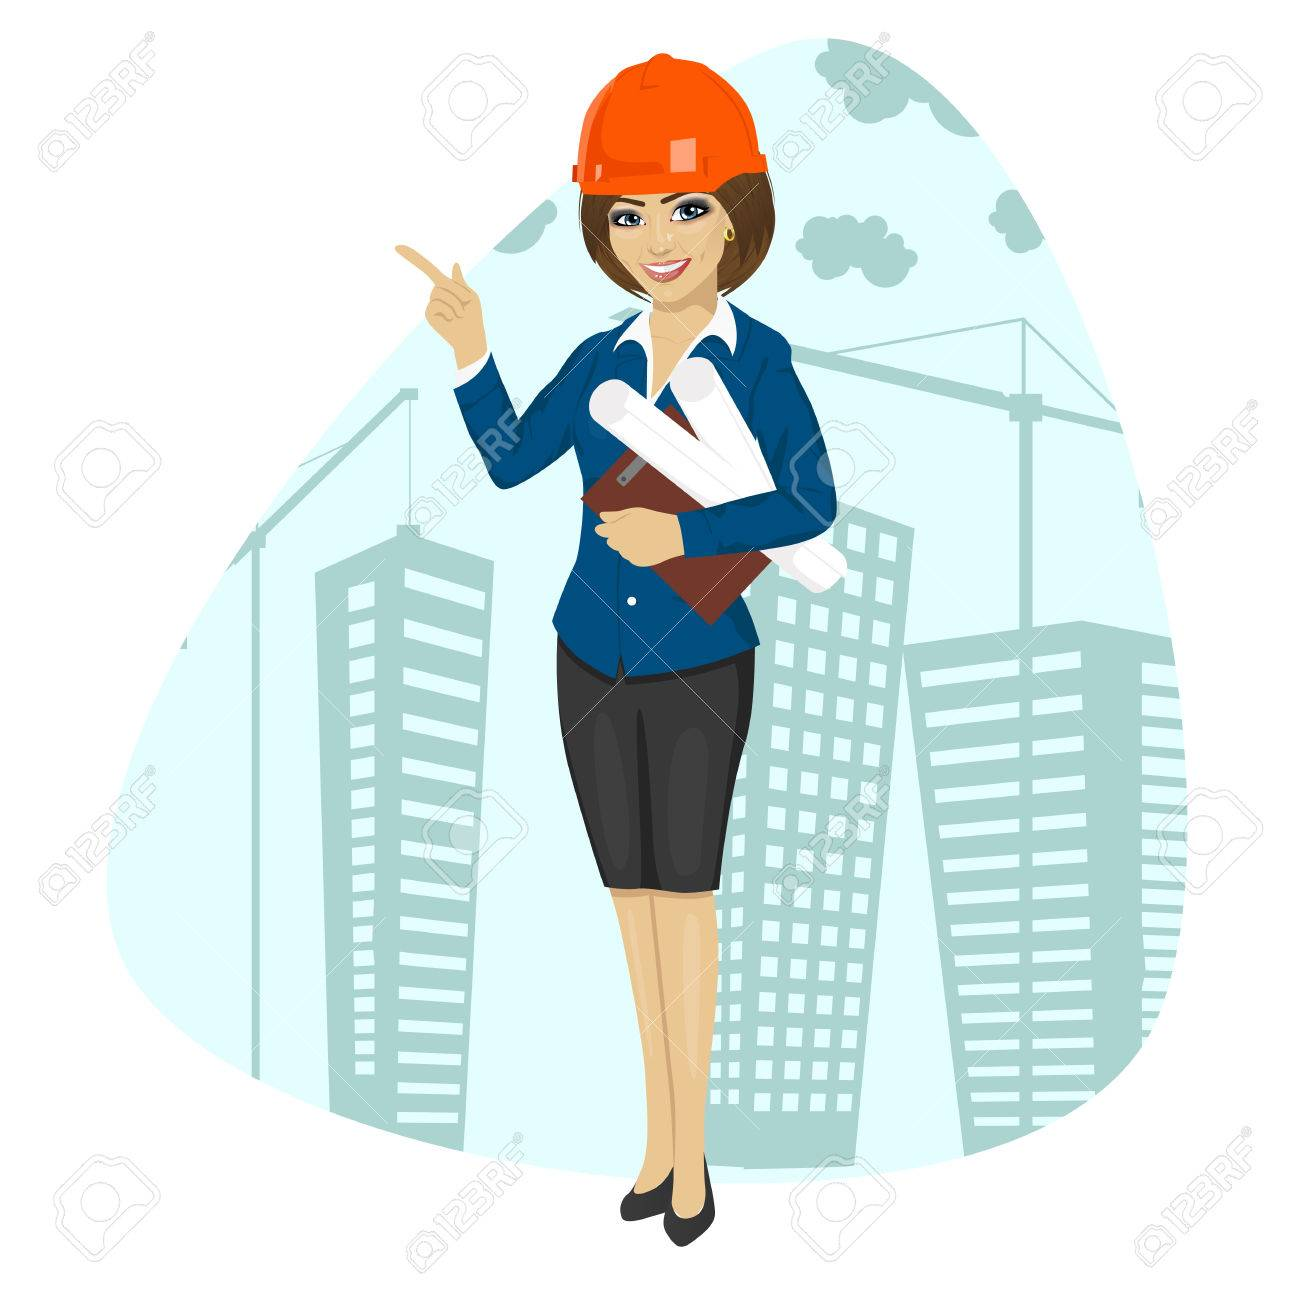 Architect Clipart Girl.